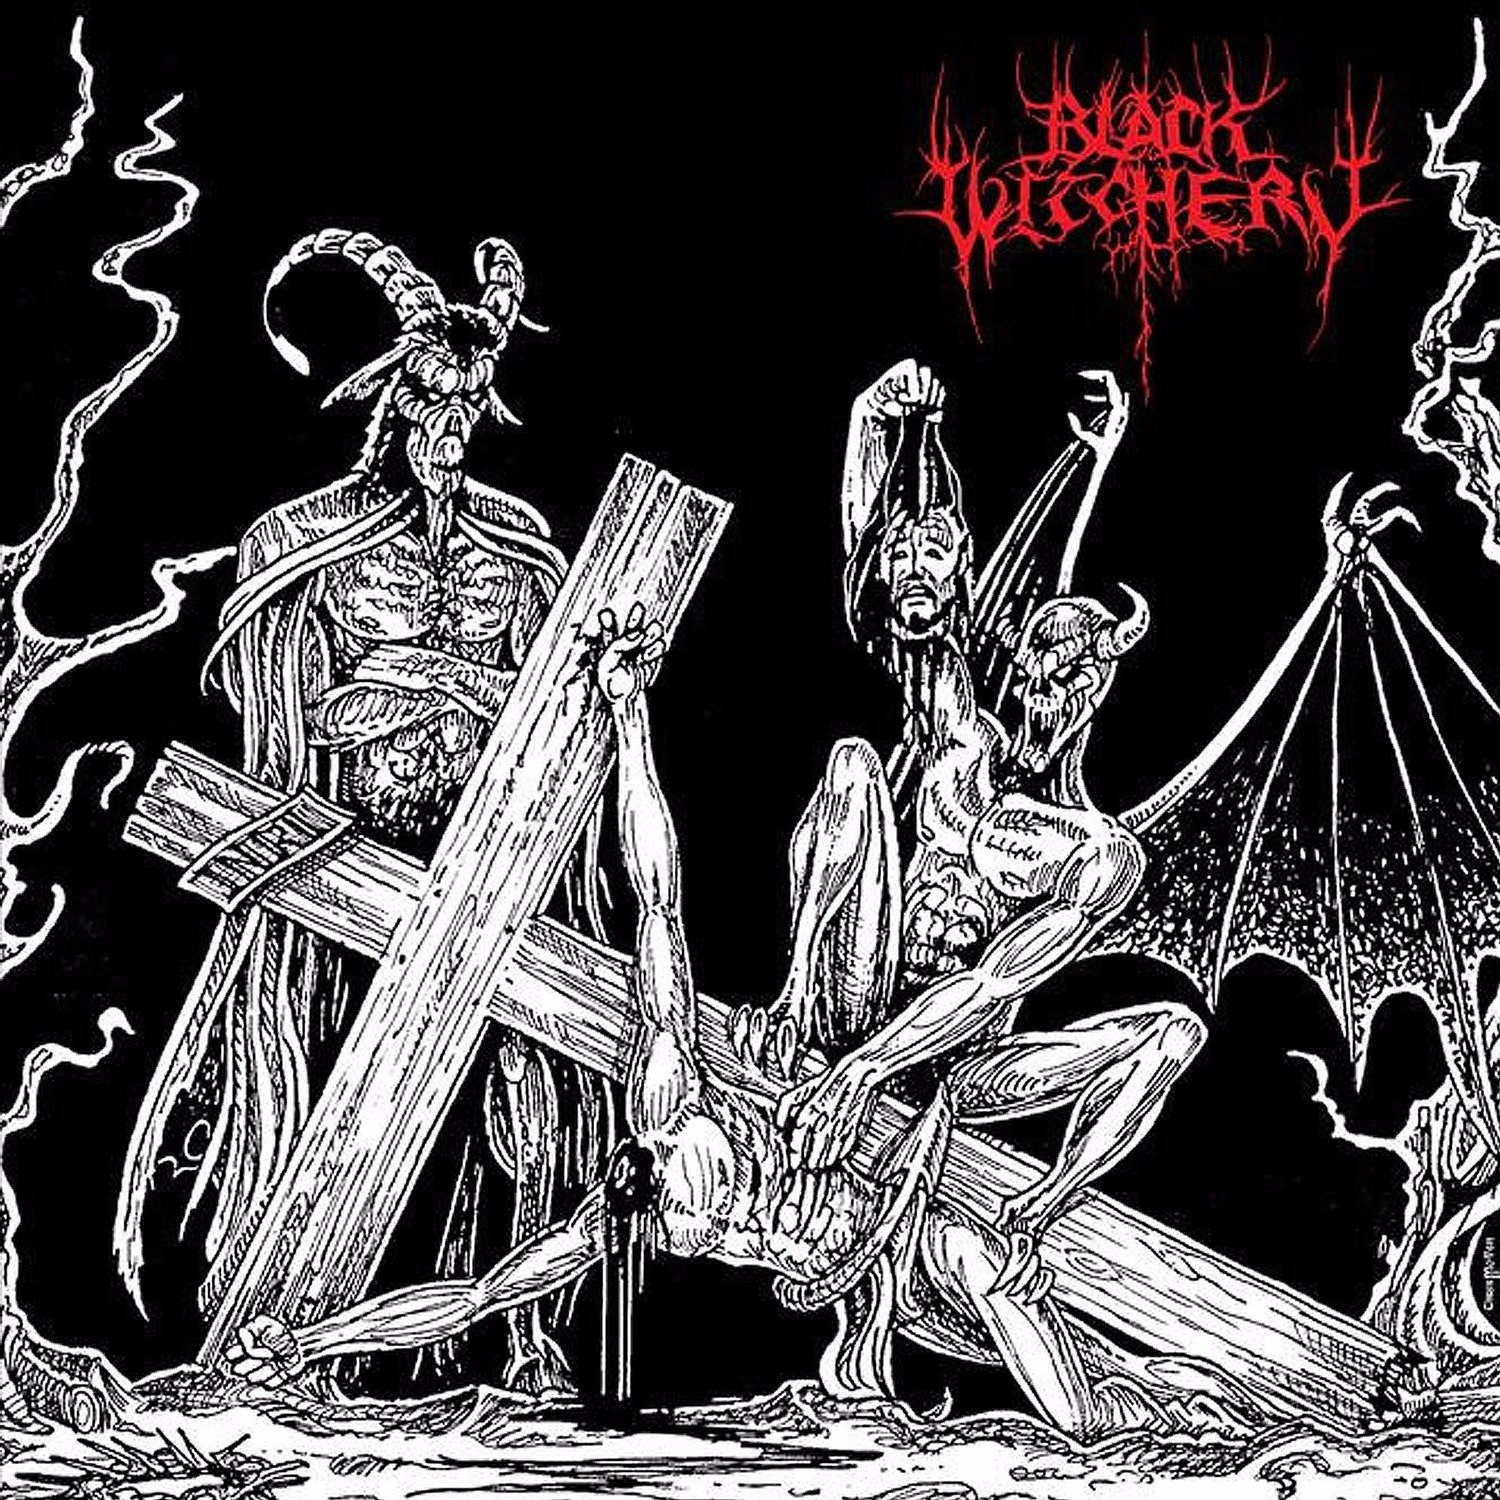 Review for Black Witchery - Desecration of the Holy Kingdom